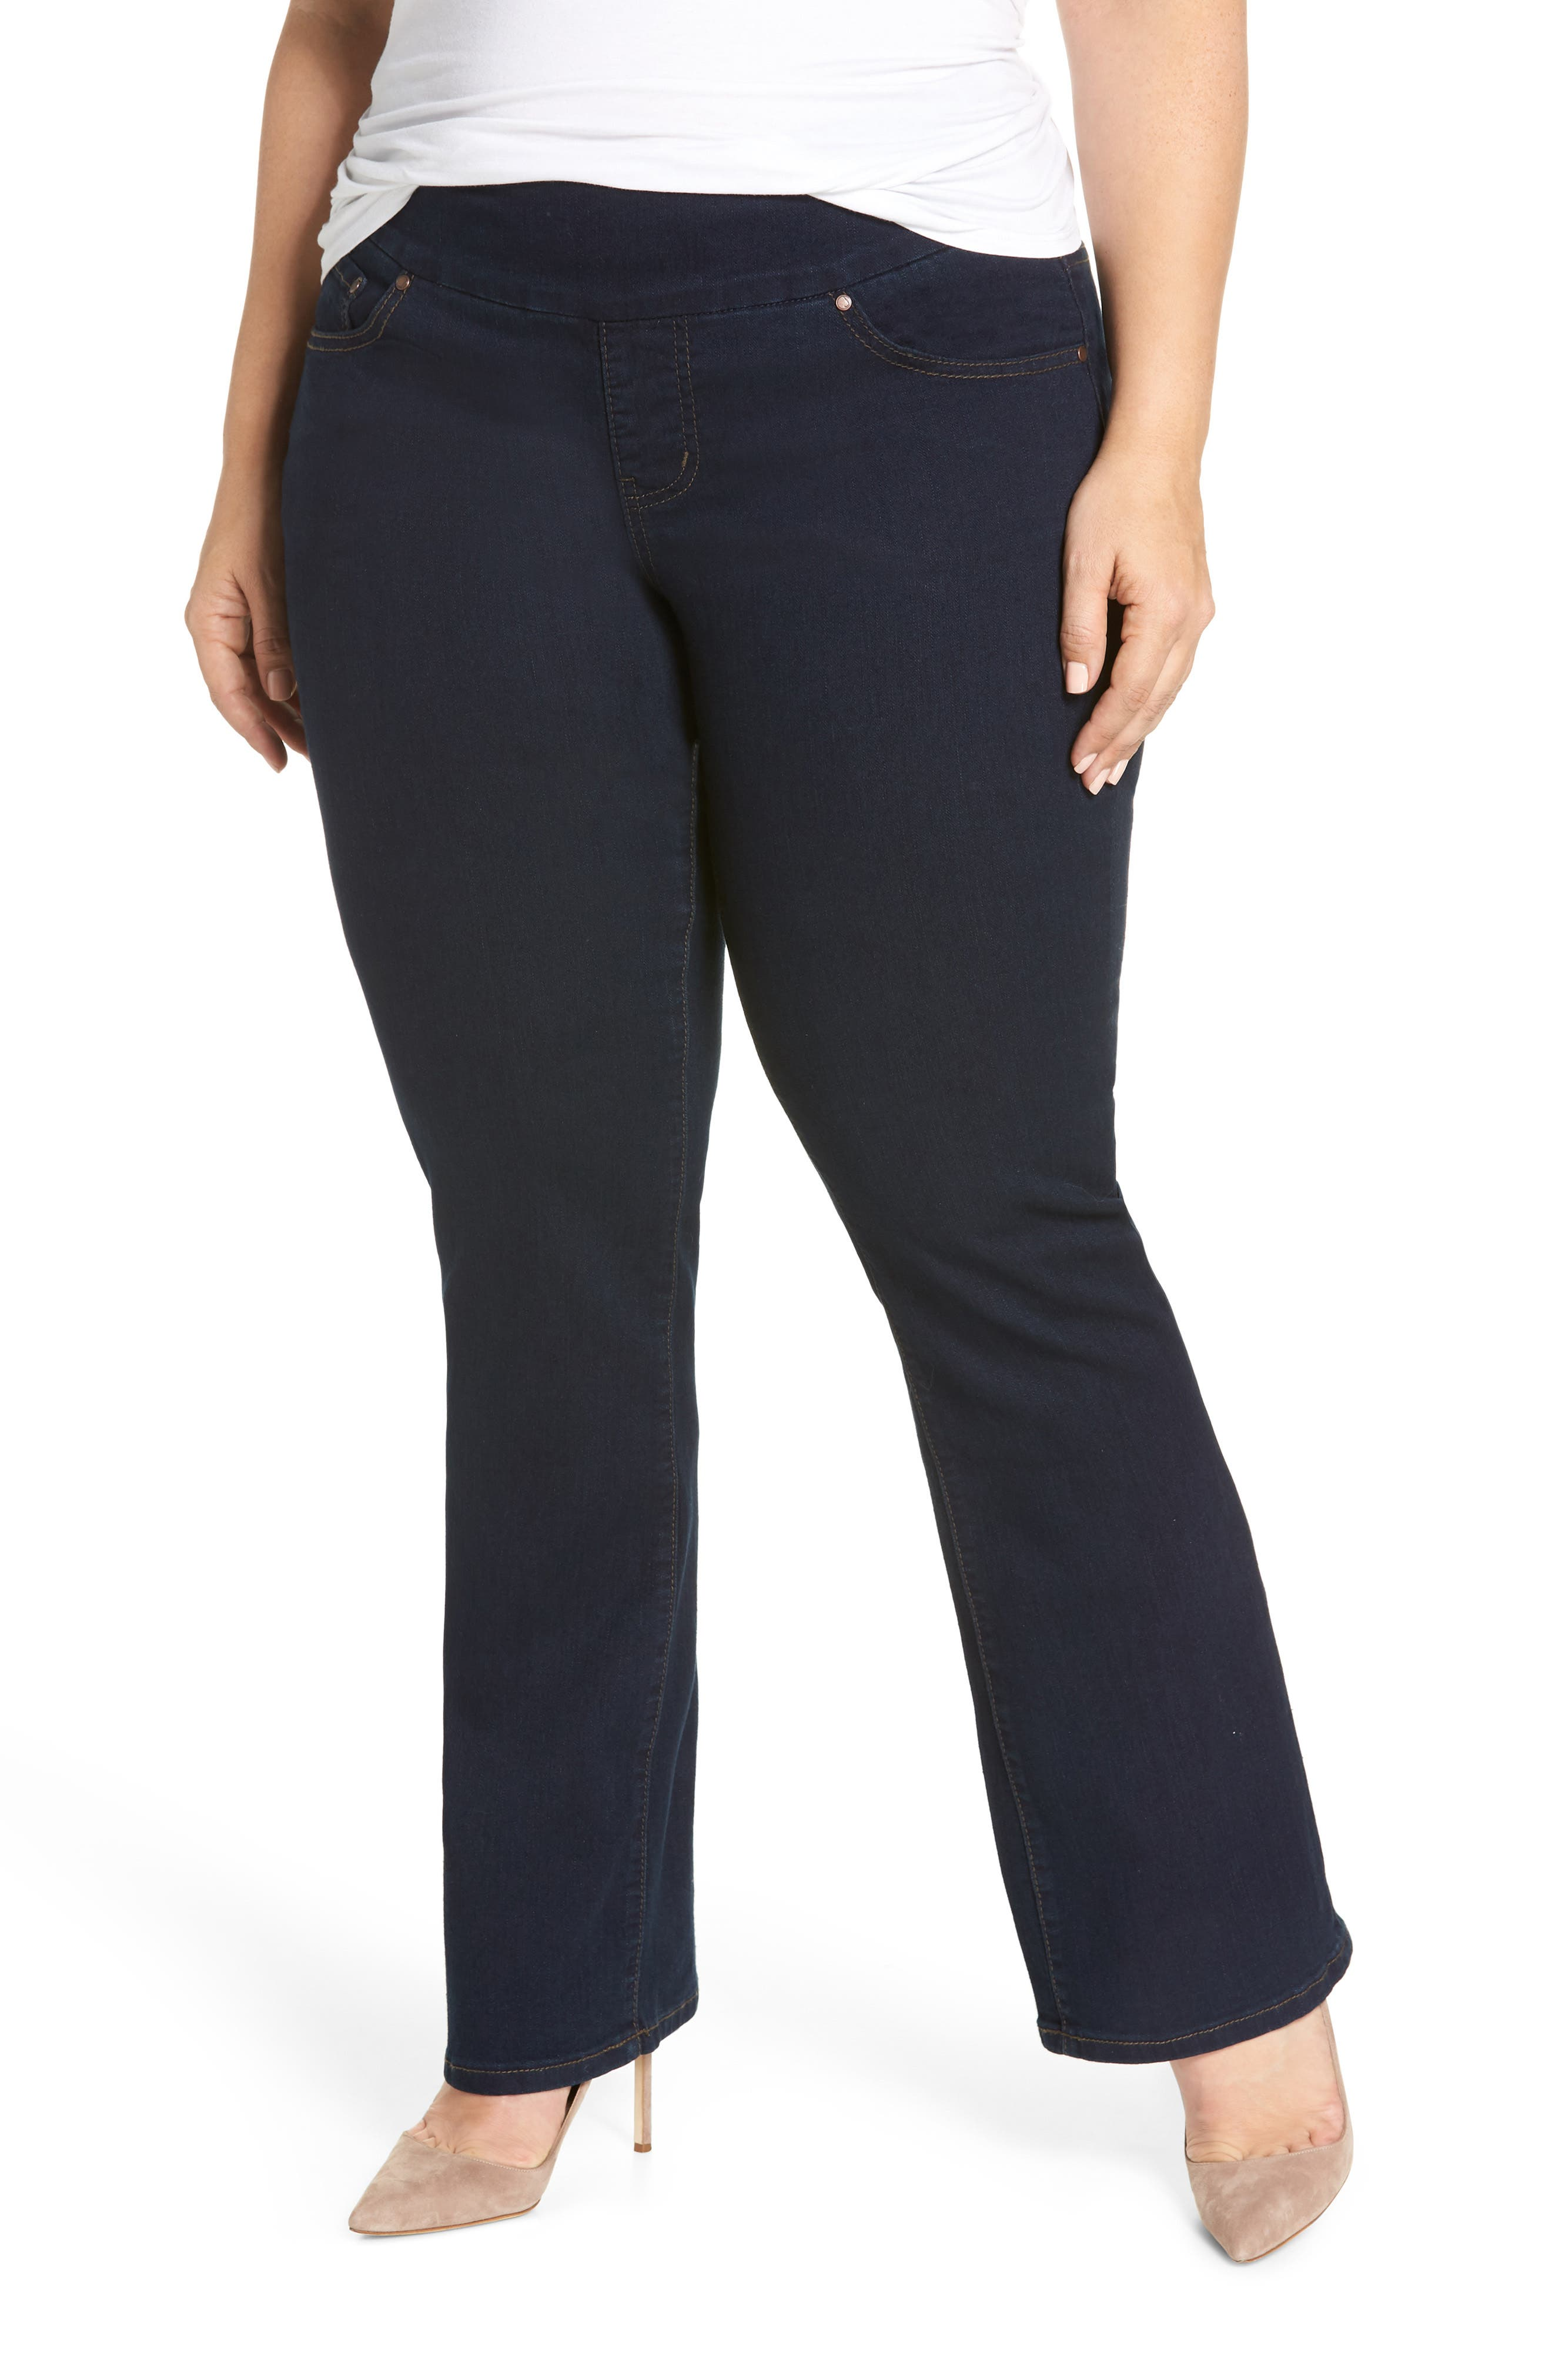 Peri Stretch Straight Leg Jeans,                             Main thumbnail 1, color,                             Dark Indigo